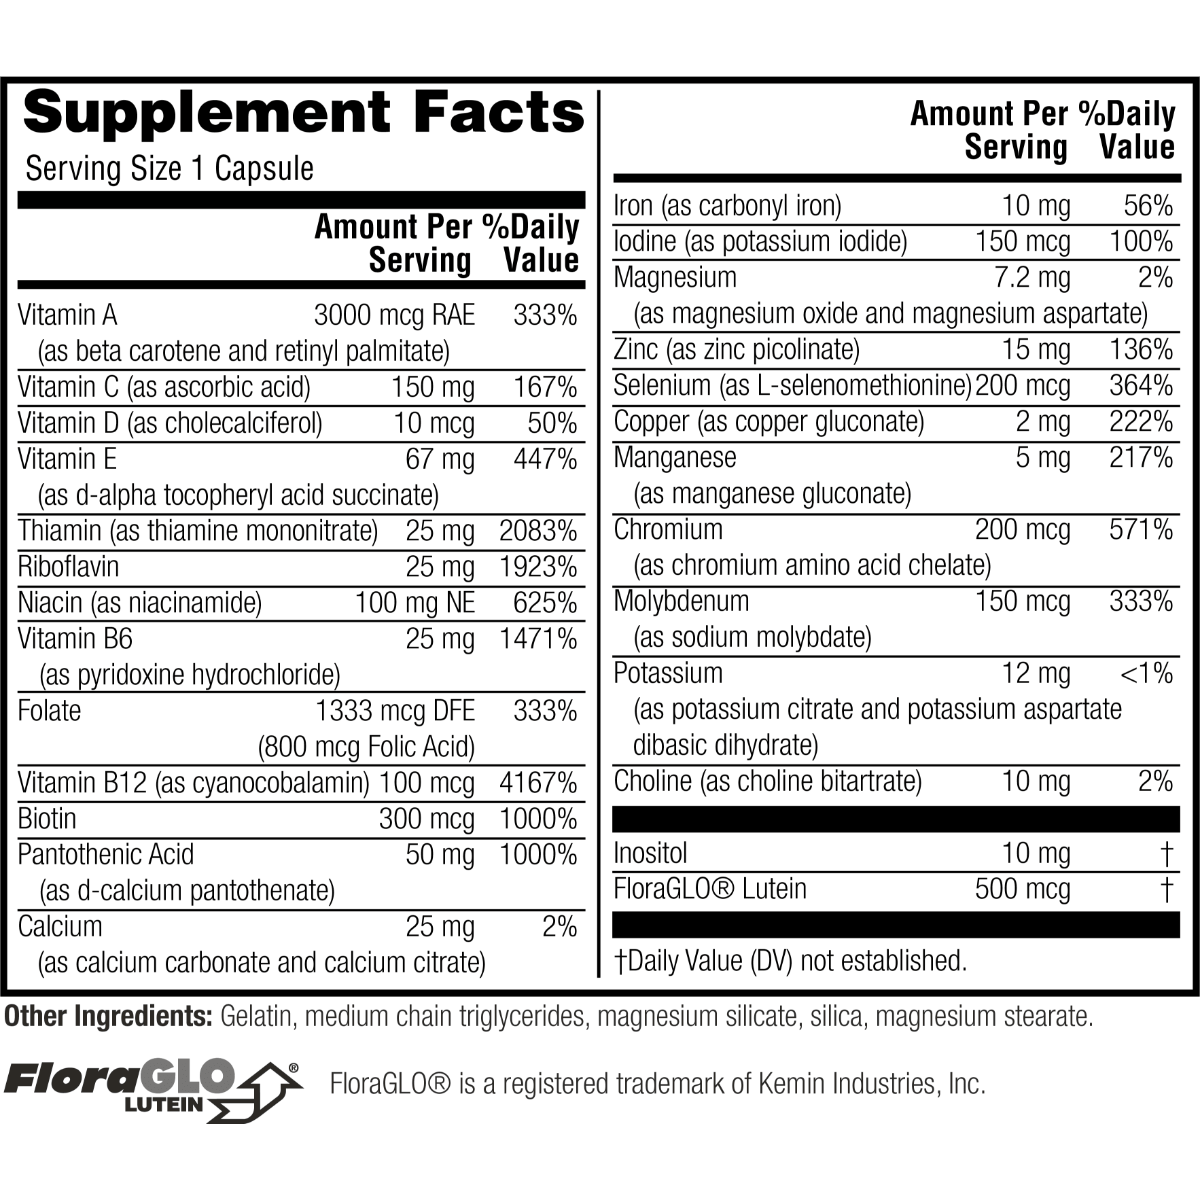 Supplement facts for Twinlab Daily One Caps with Iron